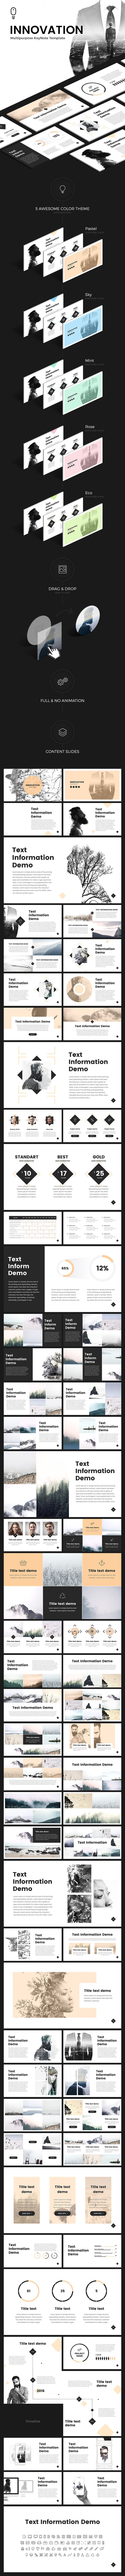 "Download: http://site2max.pro/innovation-multipurpose-keynote-template/ ""Innovation"" Keynote template #keynote #key #innovation #report #marketing #slides #template #modern #minimal #creative #light #portfolio #chart #infographic #presentation"